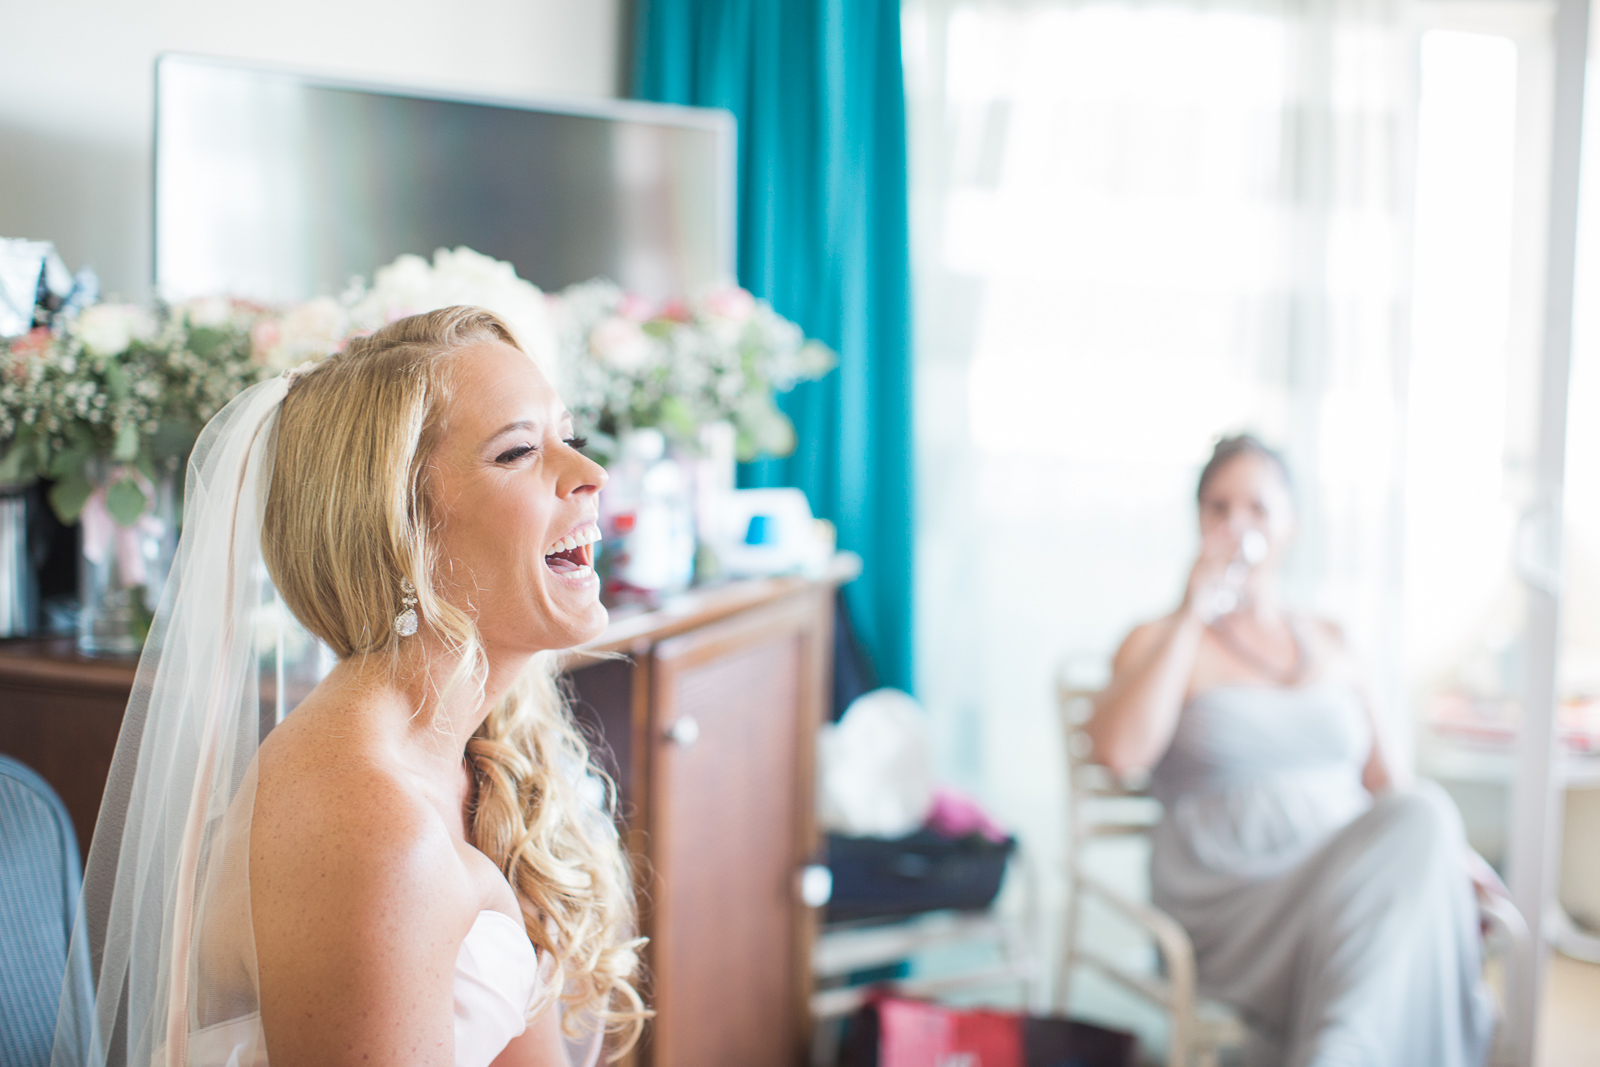 Candid, fun moment with bride during bridal prep at Hotel Milo before her wedding